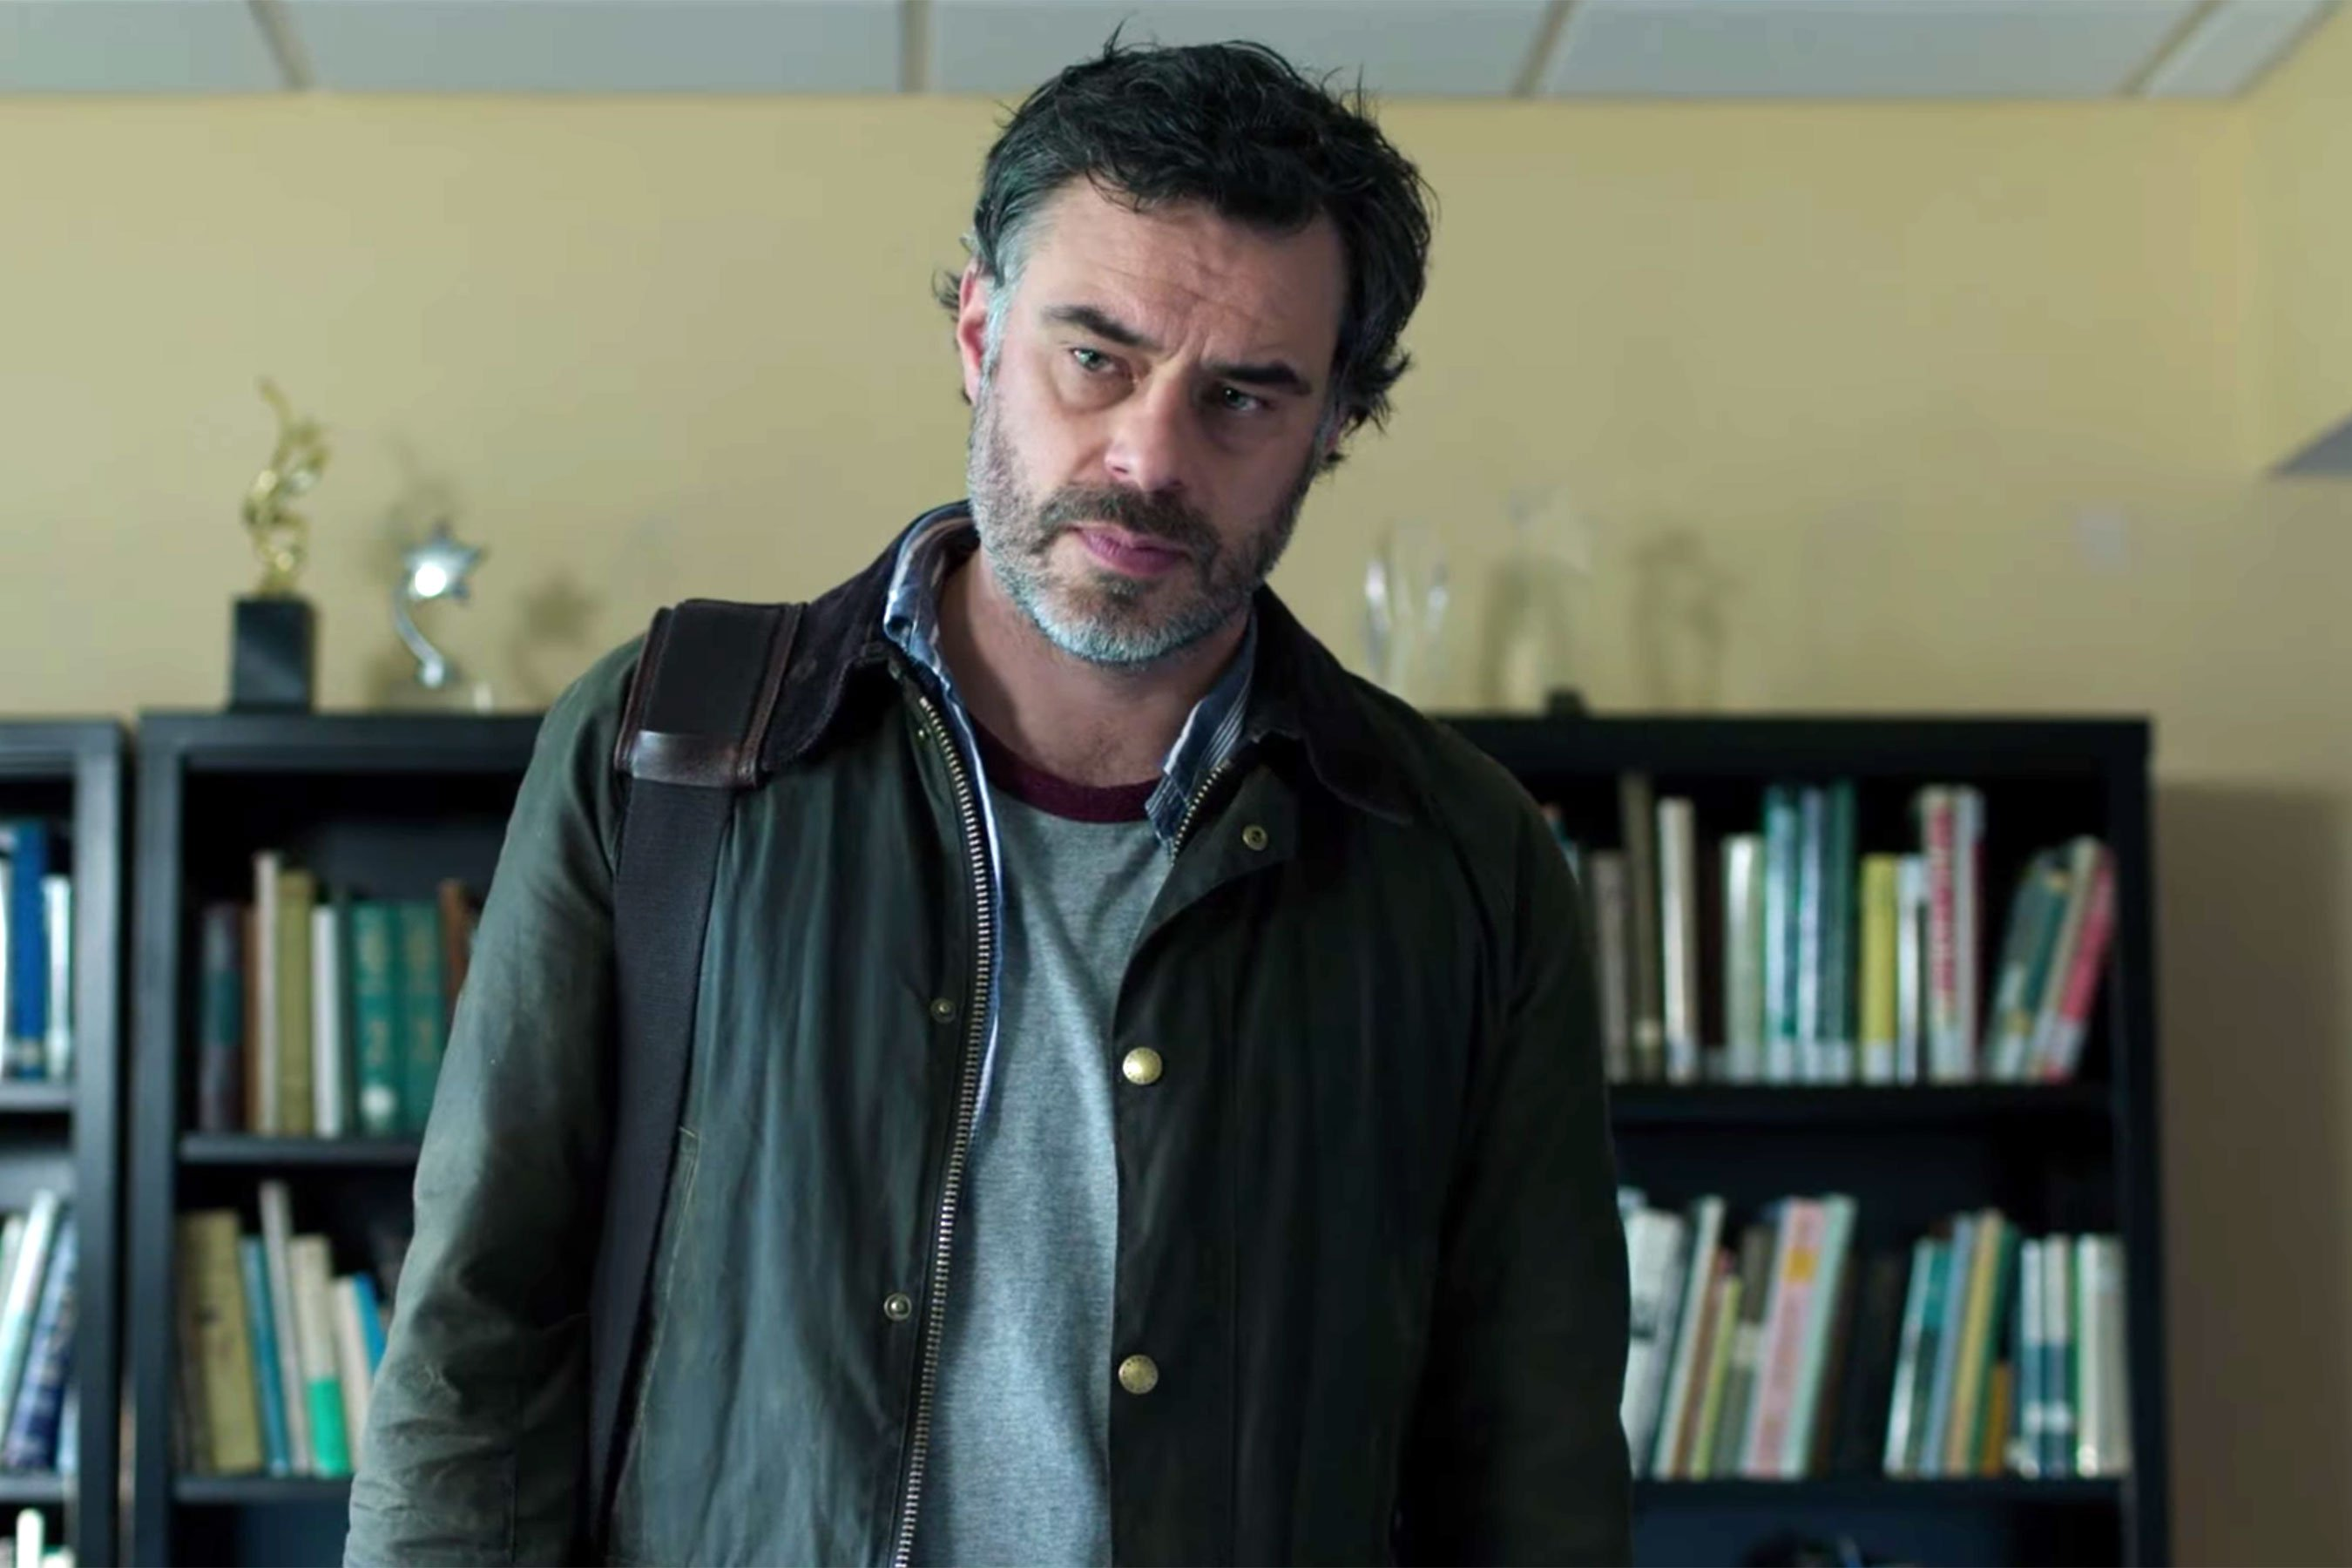 Humor Me review: Jemaine Clement, Elliot Gould movie is a feel-good charmer